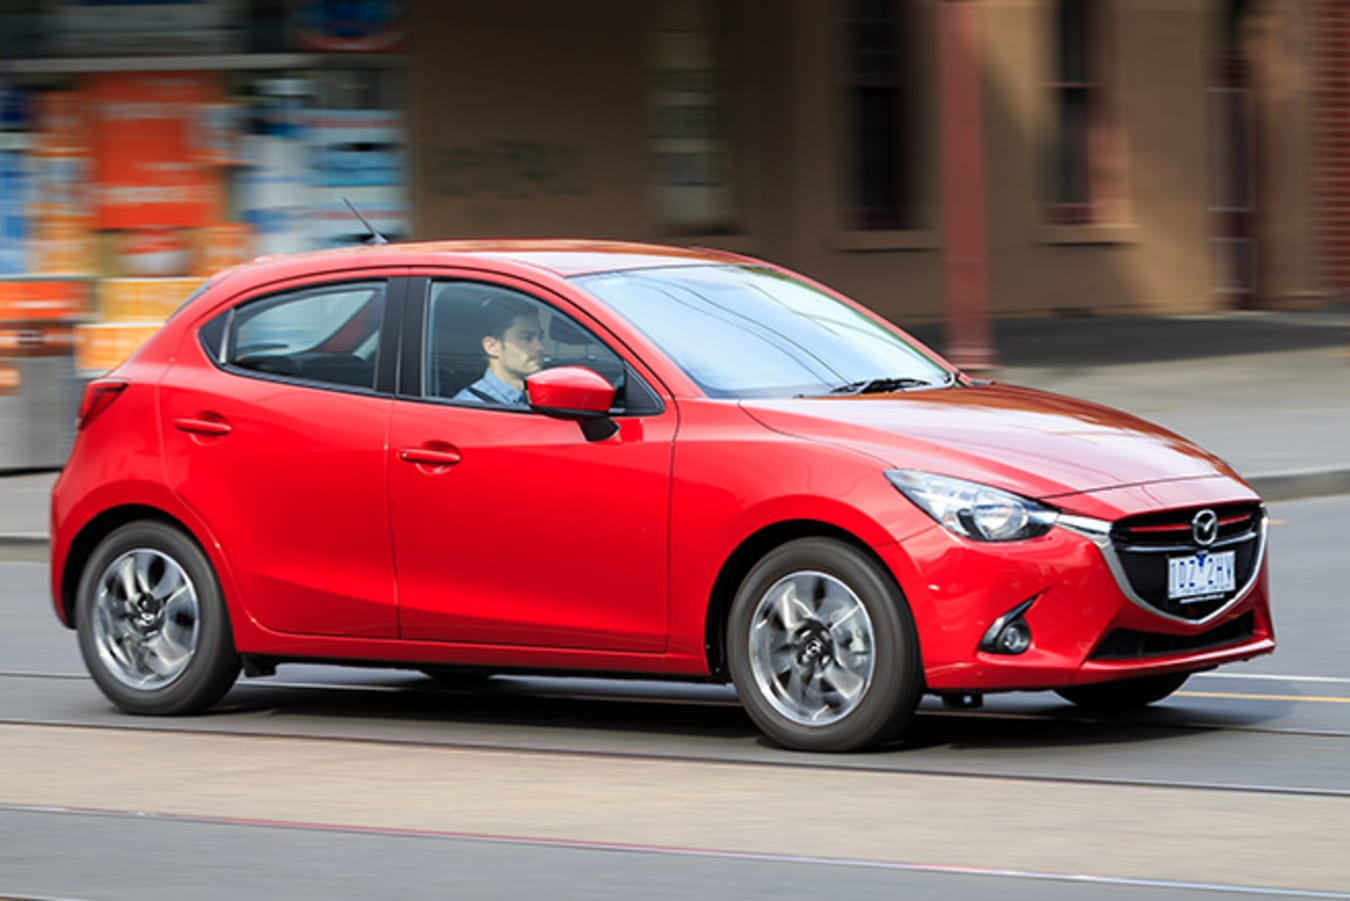 Mazda 2 front side view